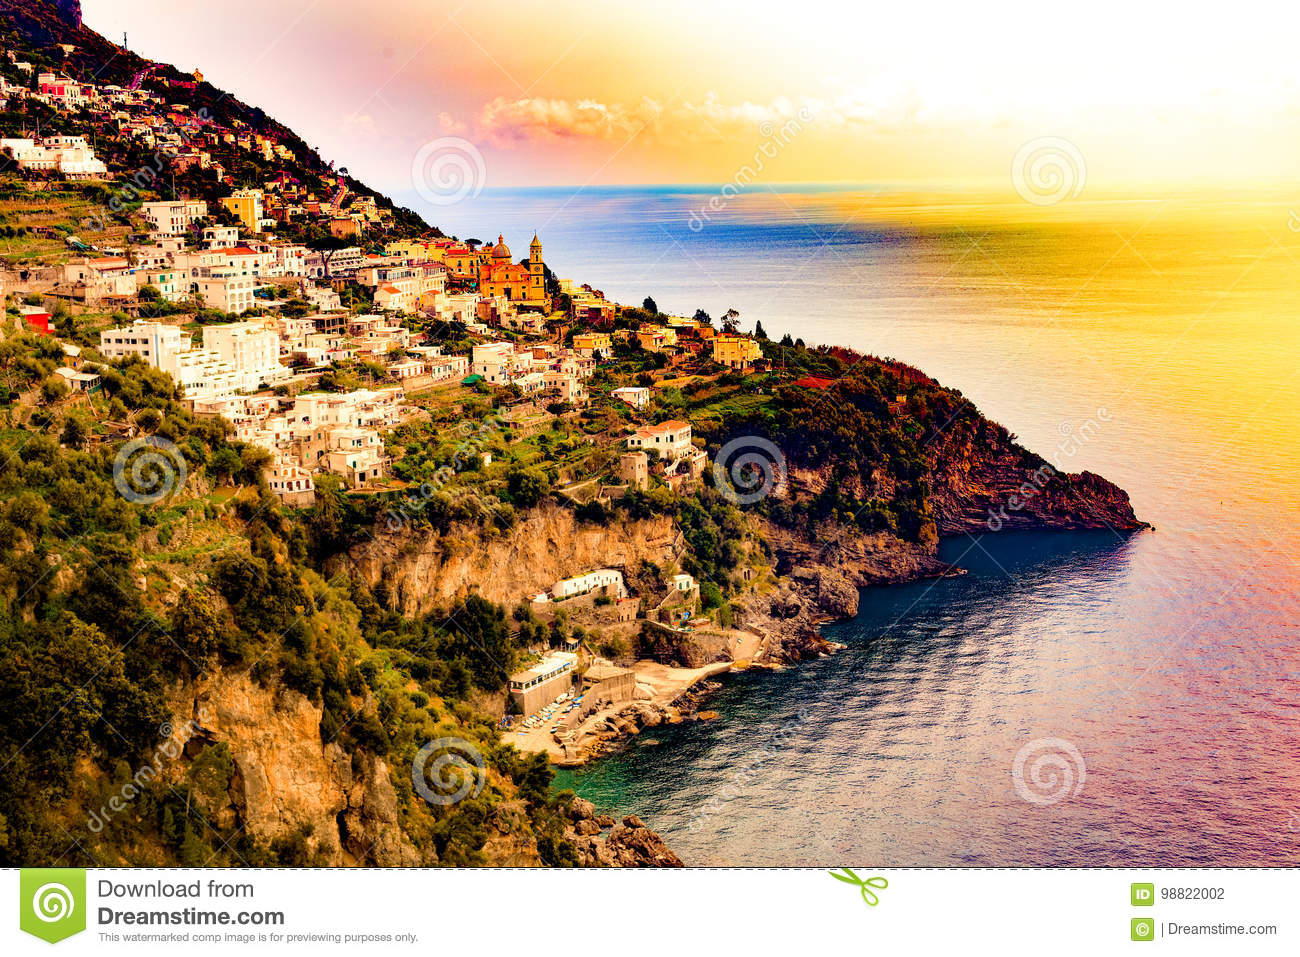 Positano, Amalfi Coast, Campania, Sorrento, Italy. Fantastik View of the town and the seaside in a summer sunset.